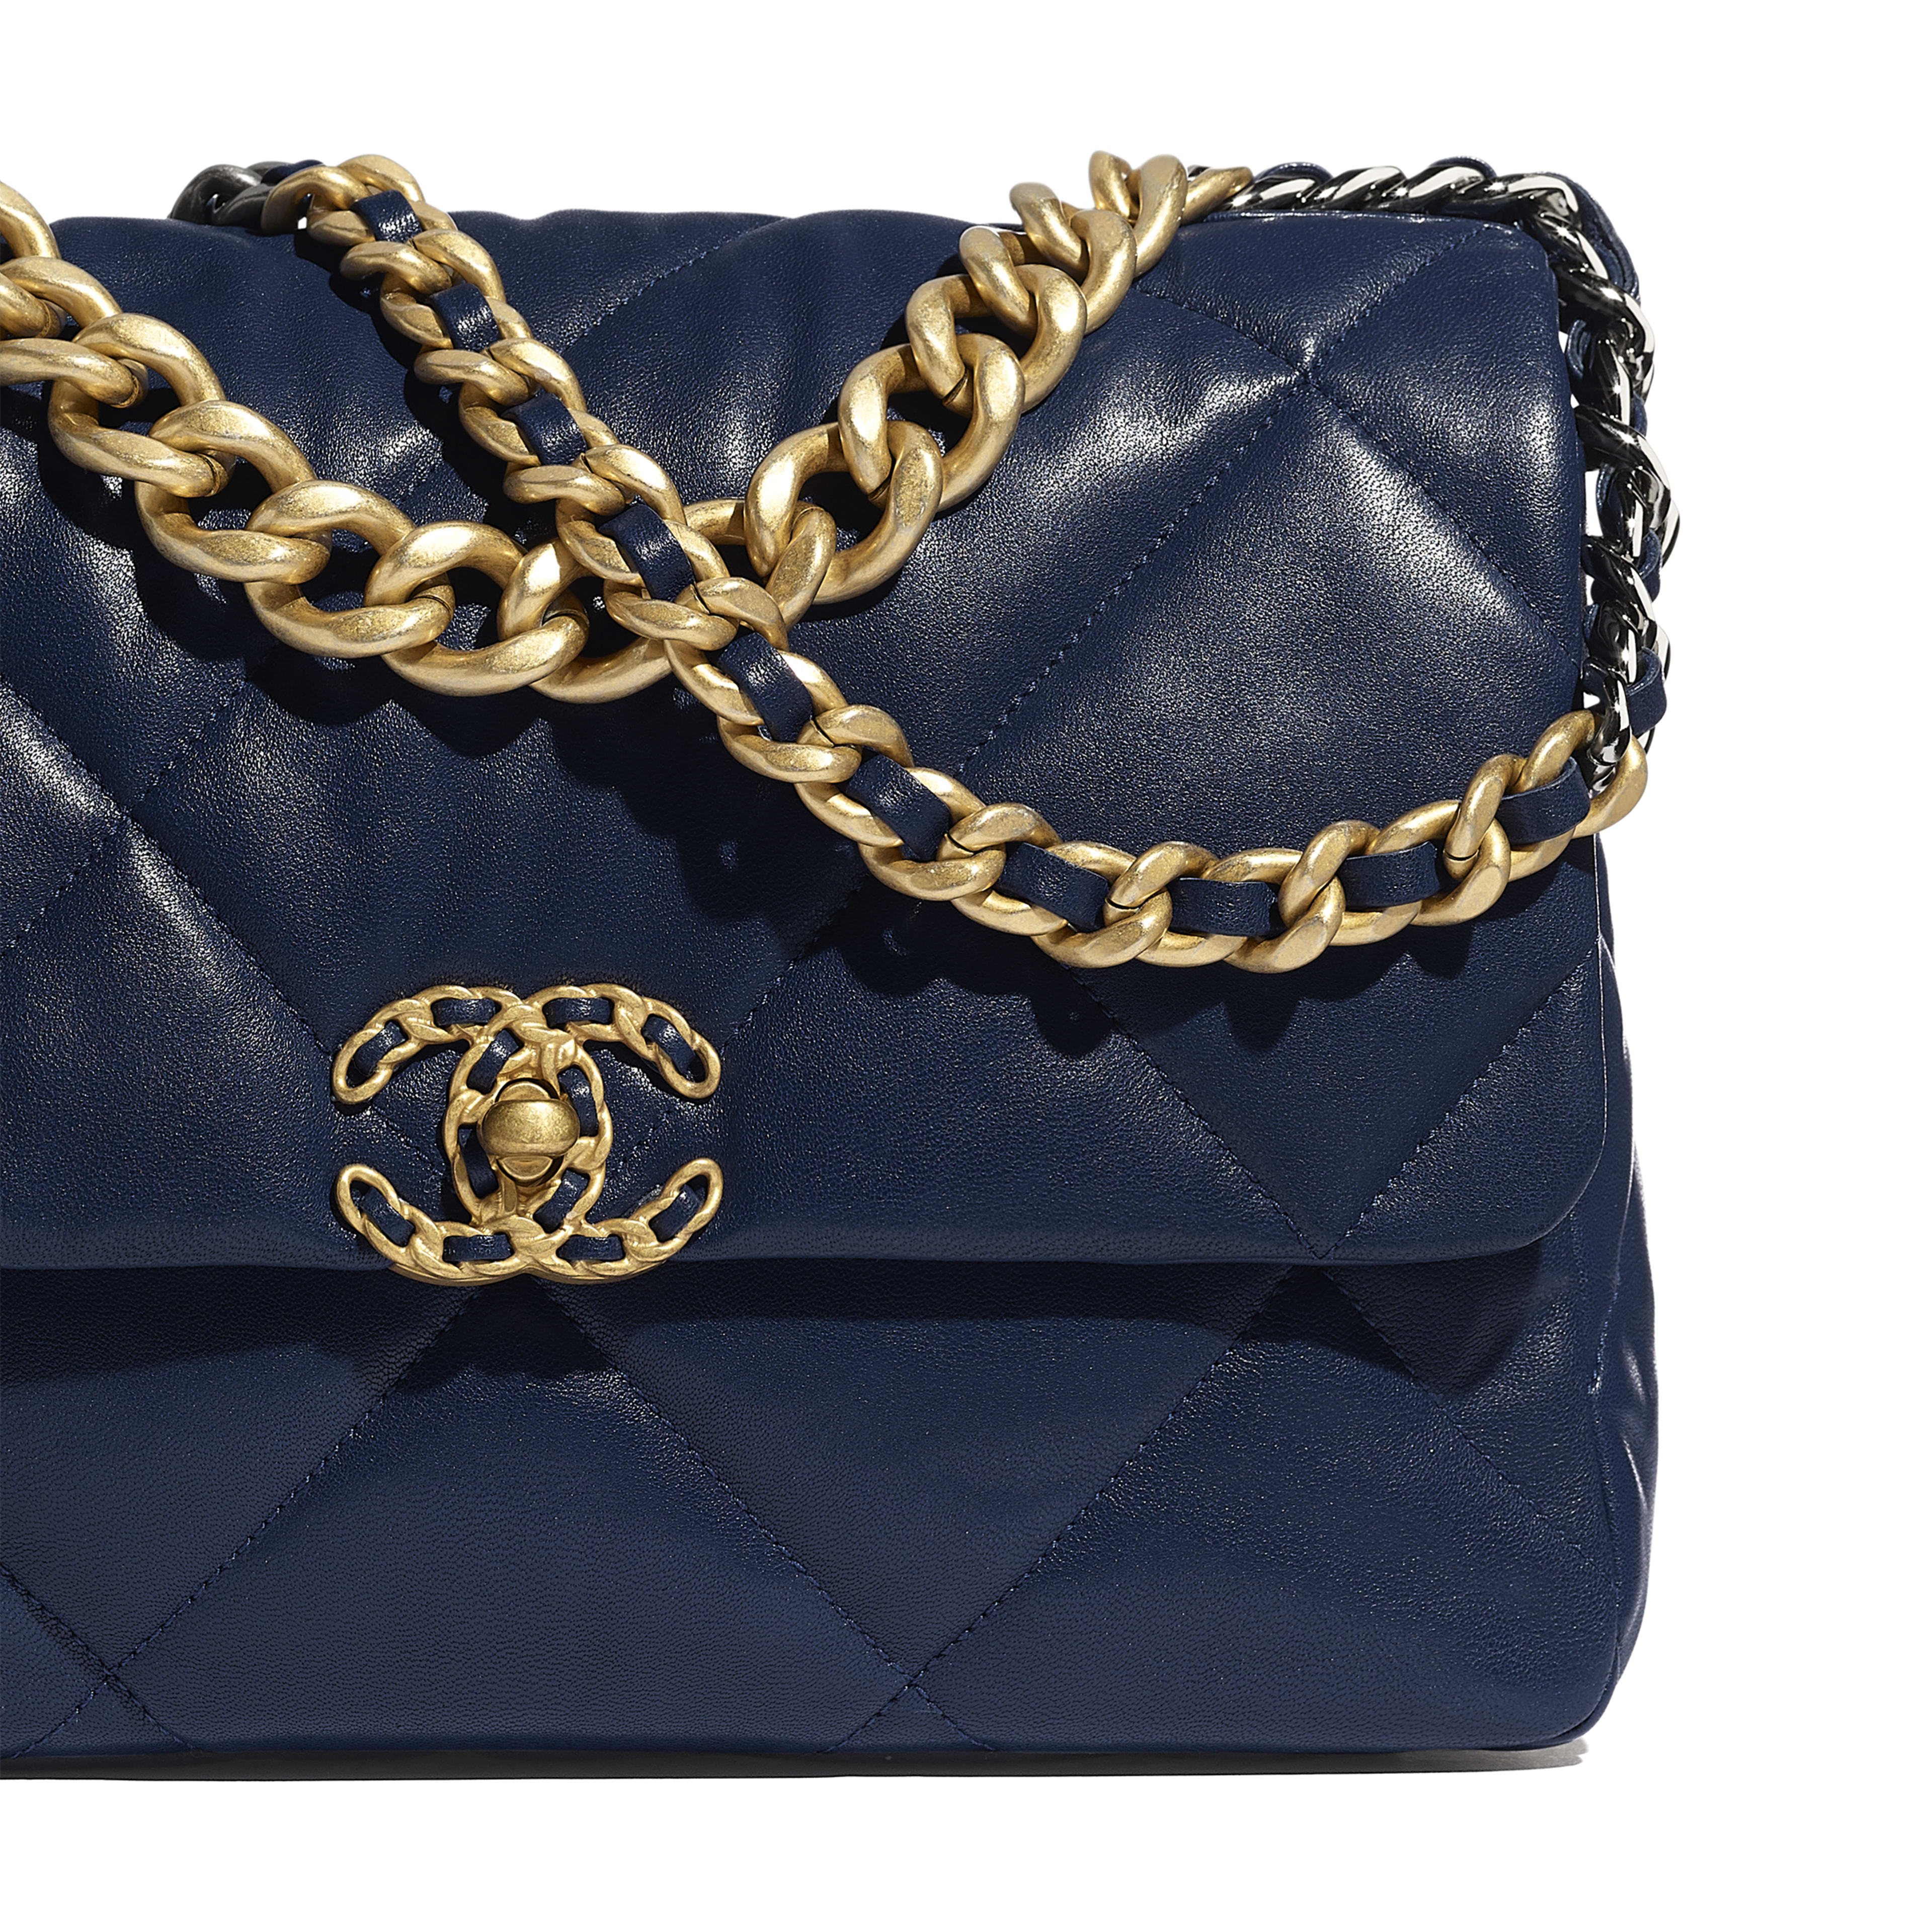 CHANEL 19 Large Flap Bag - Navy Blue - Lambskin, Gold-Tone, Silver-Tone & Ruthenium-Finish Metal - Extra view - see full sized version